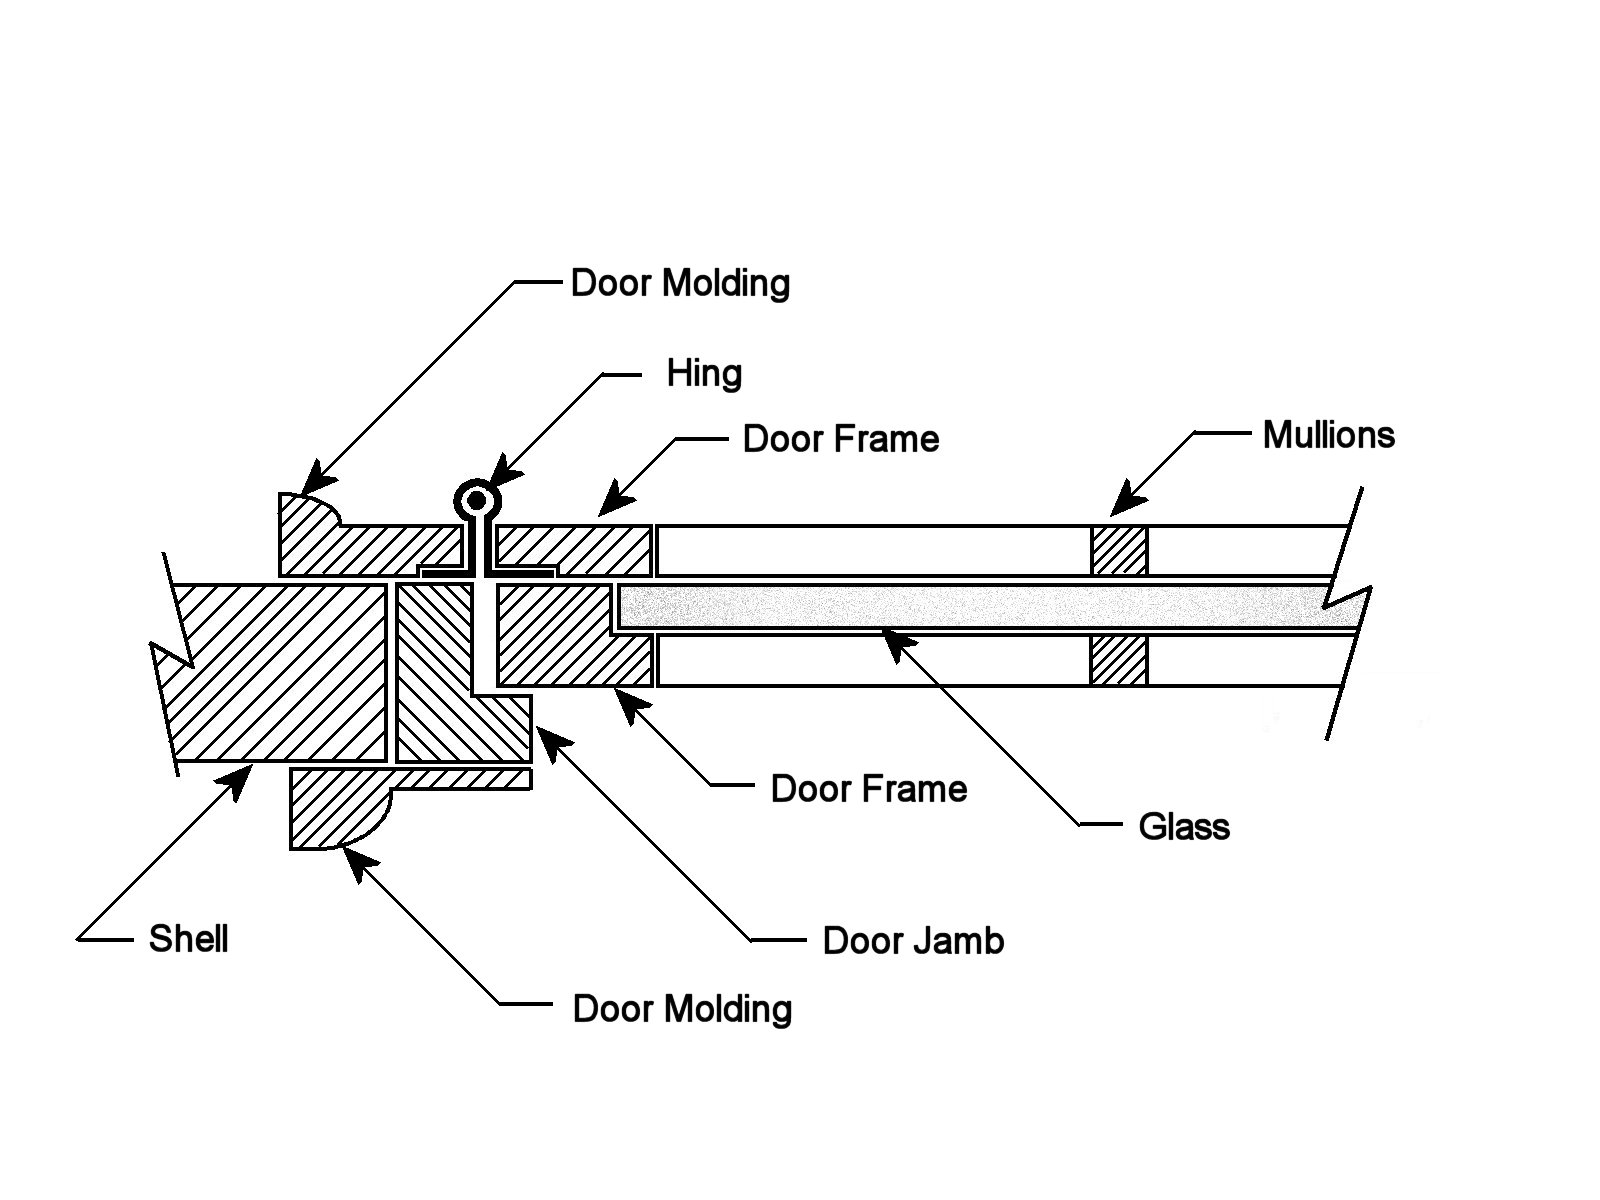 Commercial exterior door parts diagram 38 wiring diagram Exterior door components